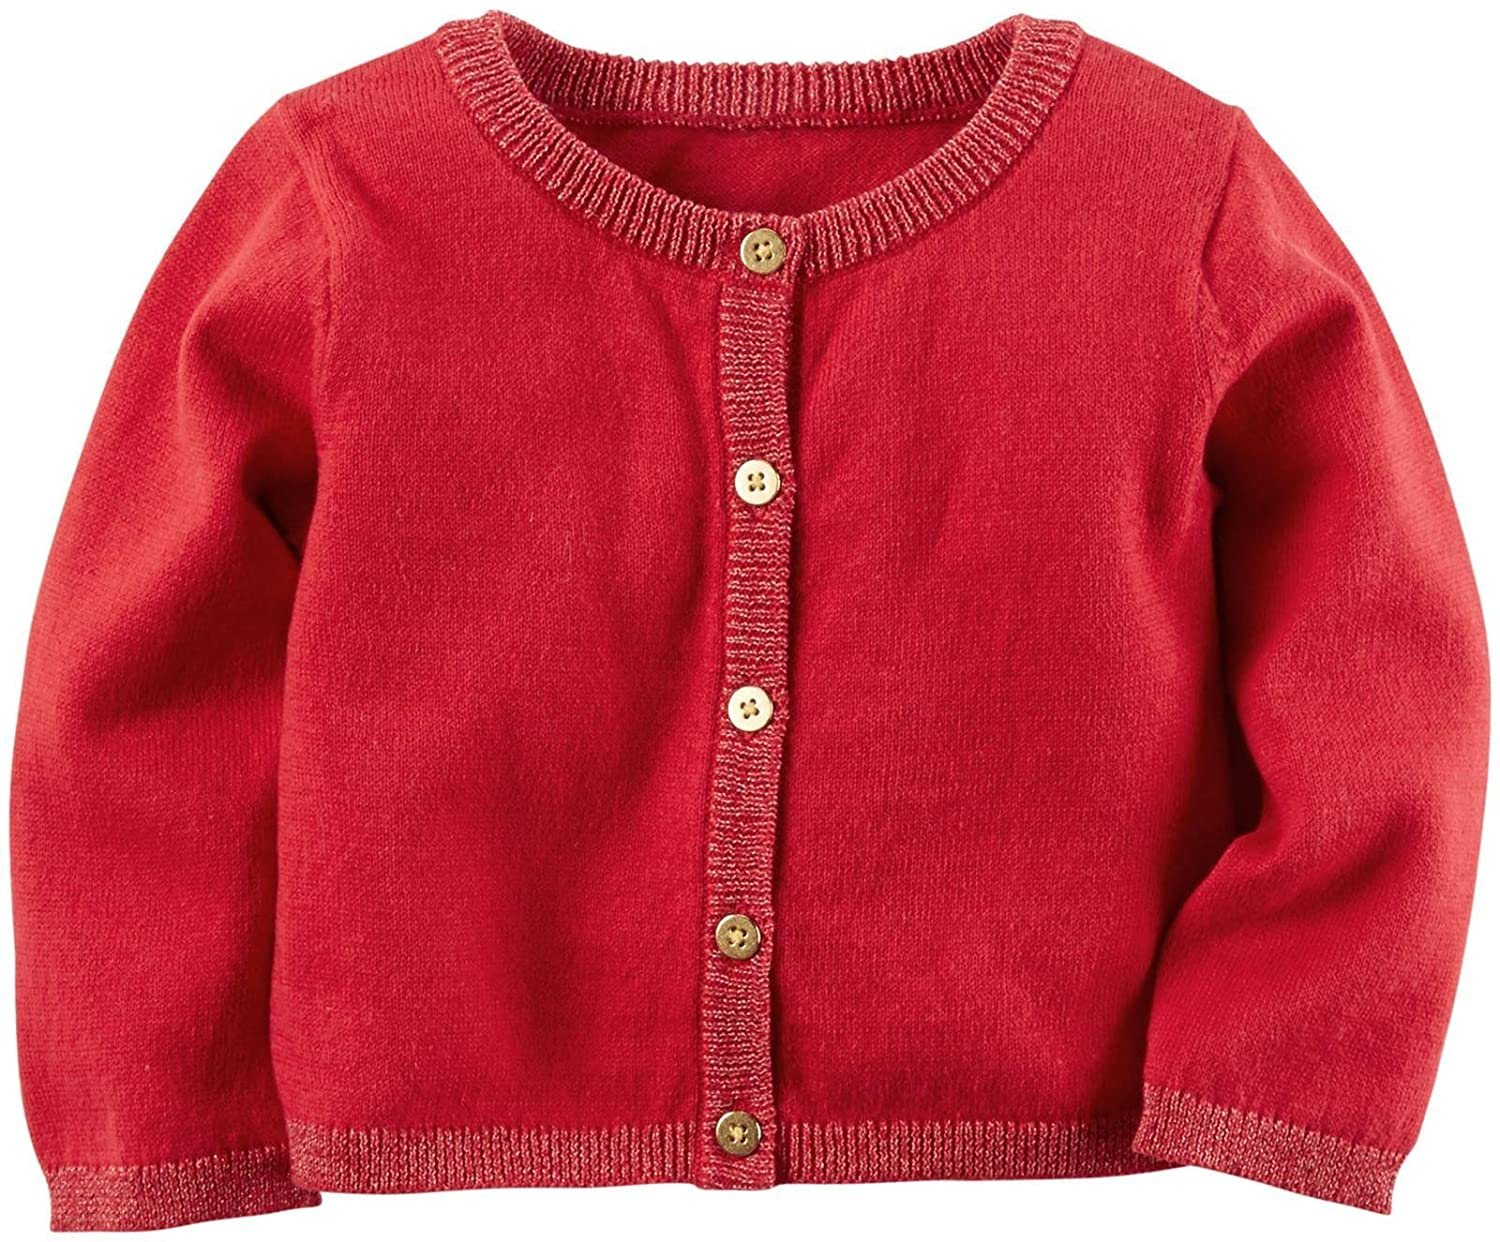 Carter's Baby-Girls Cardigans 120g102 Red 18M Carters 120G102-Red-18M